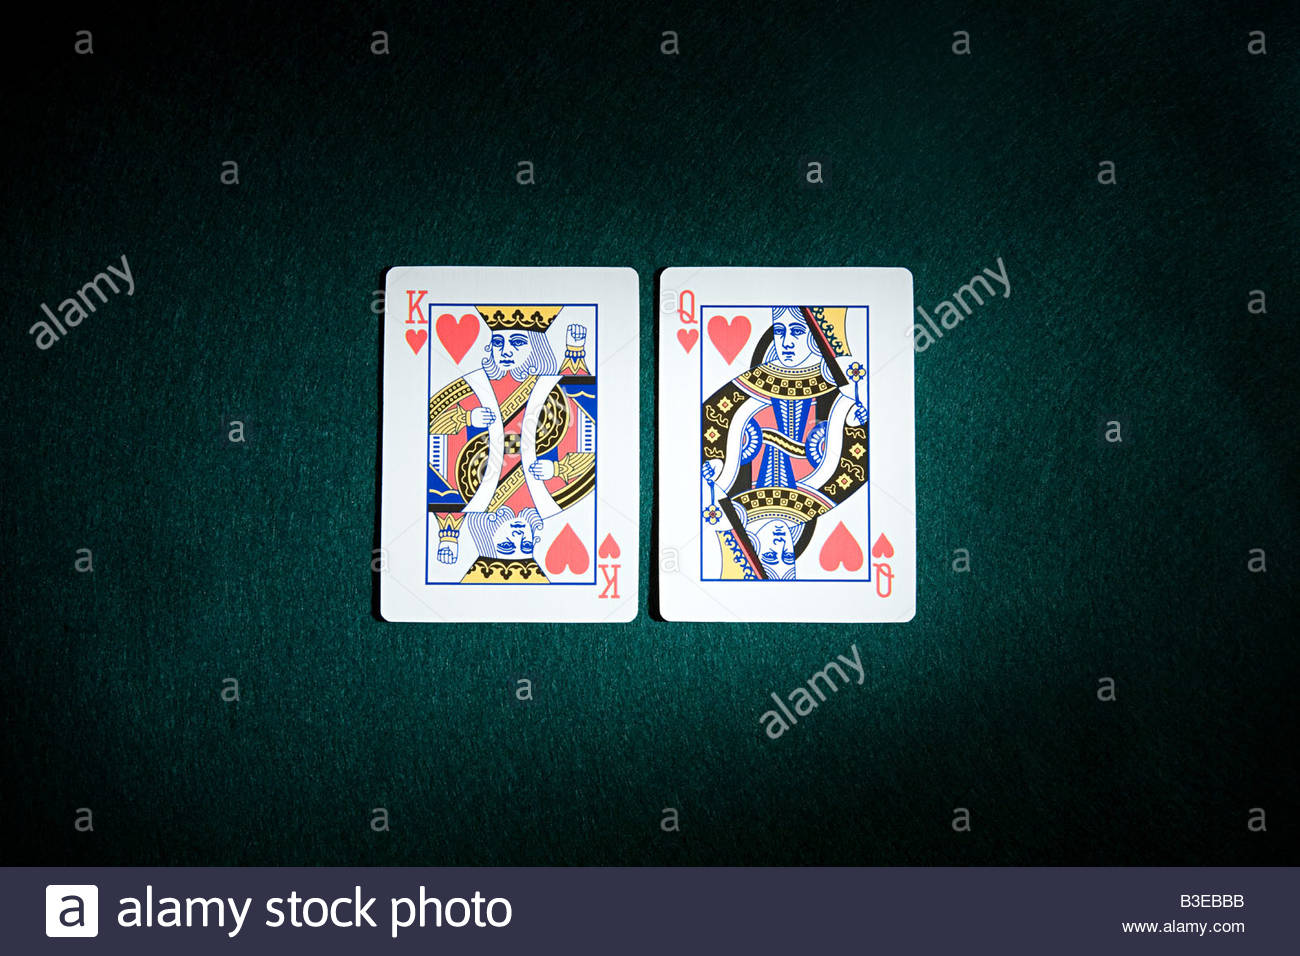 King and queen of hearts - Stock Image